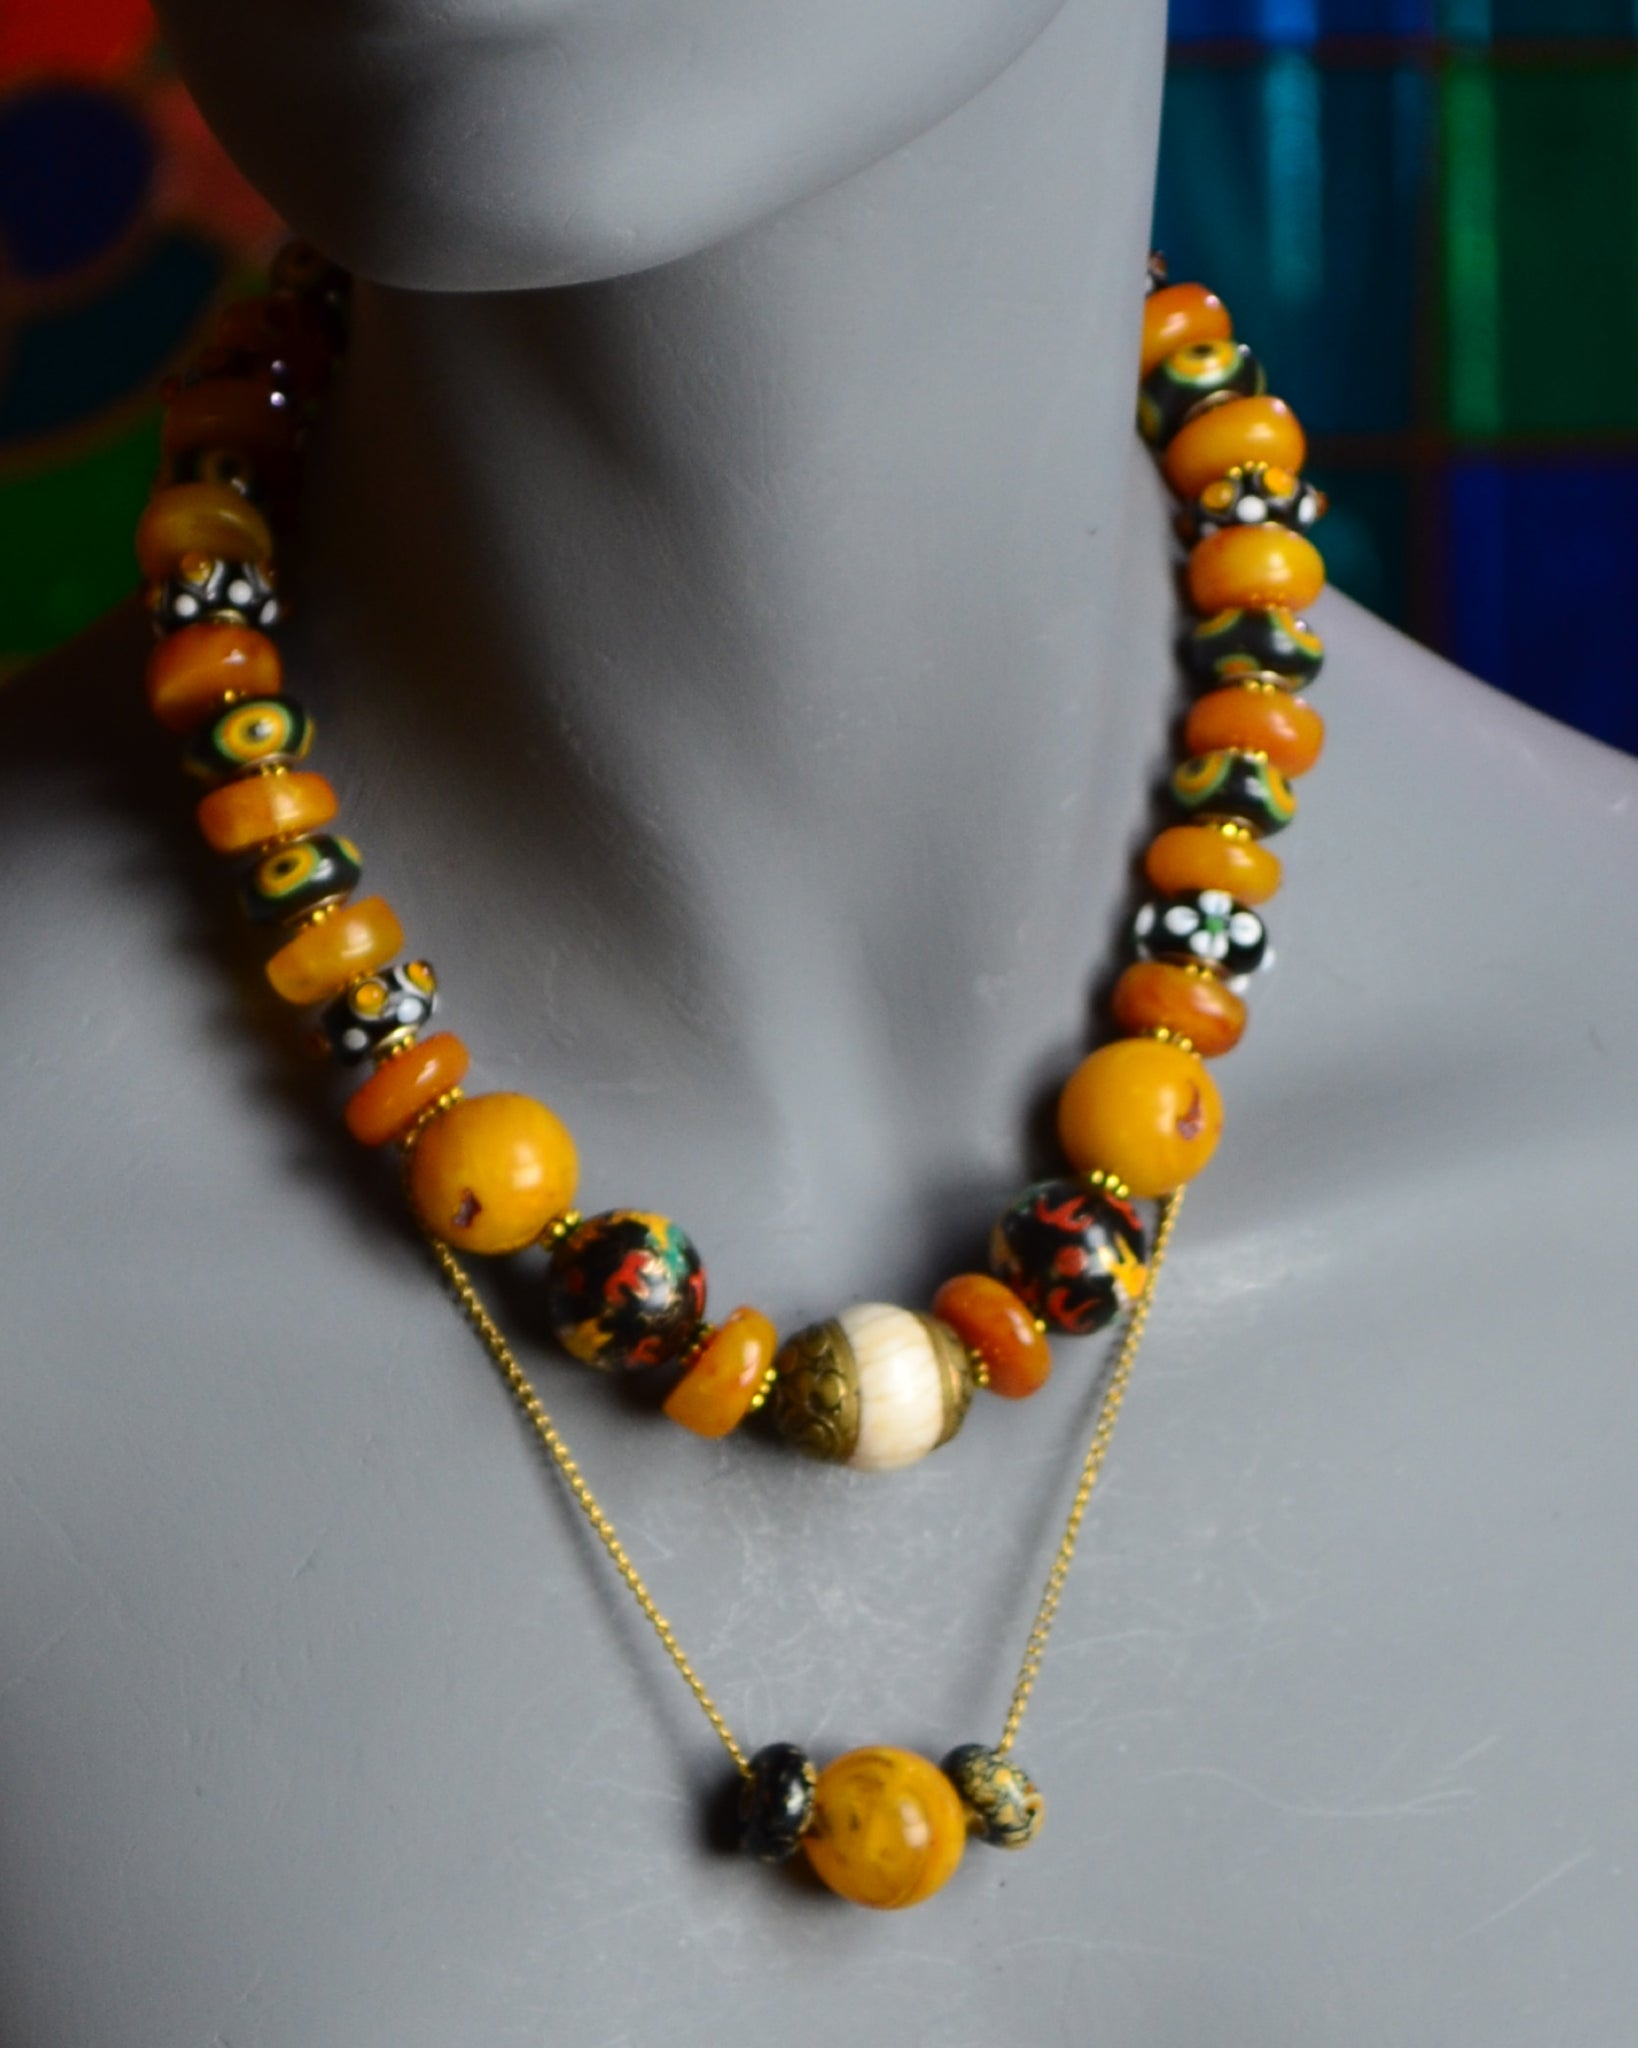 Yellow, the color of the mind and intellect, is optimistic and cheerful;                                                     and wearing yellow makes you look and feel optimistic. So when you are down, put on this yellow necklace and buck yourself up.